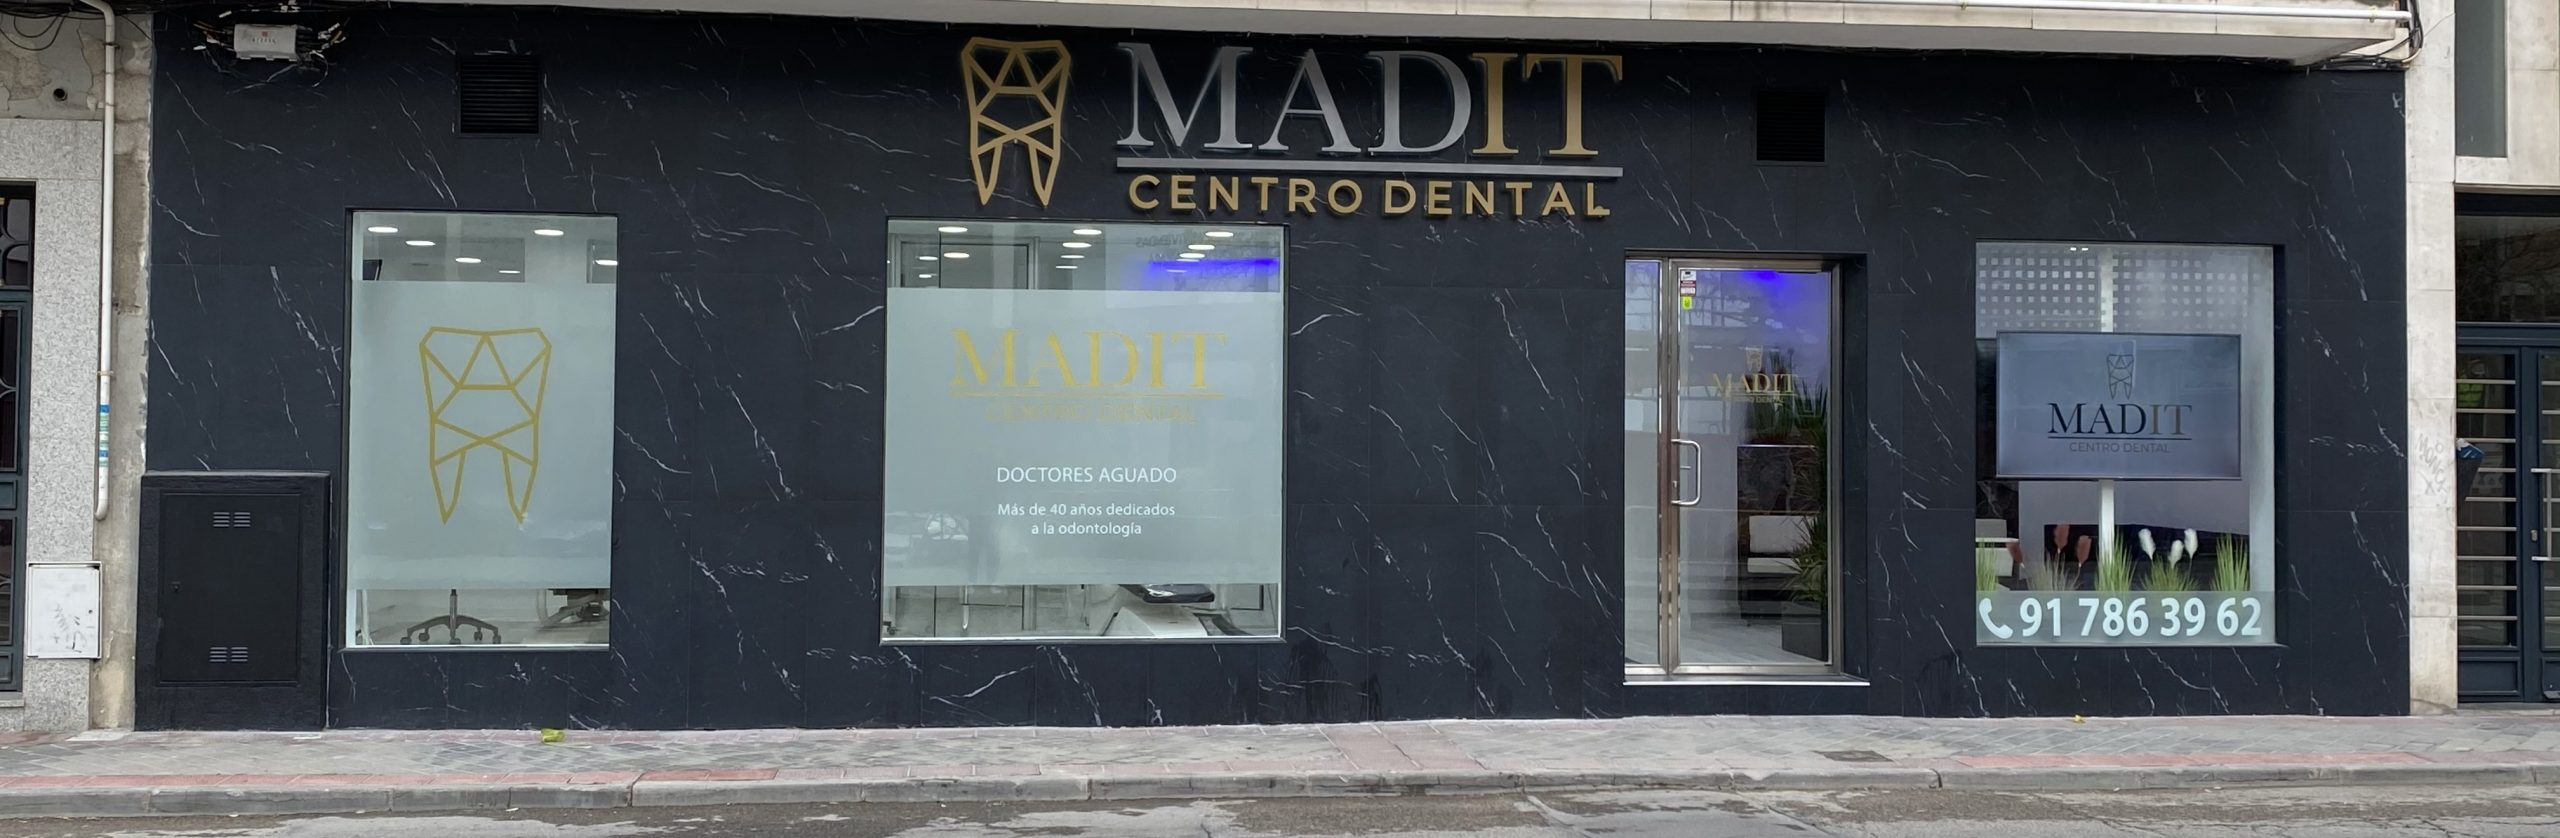 Clínica Bucodental en Madrid Vallecas